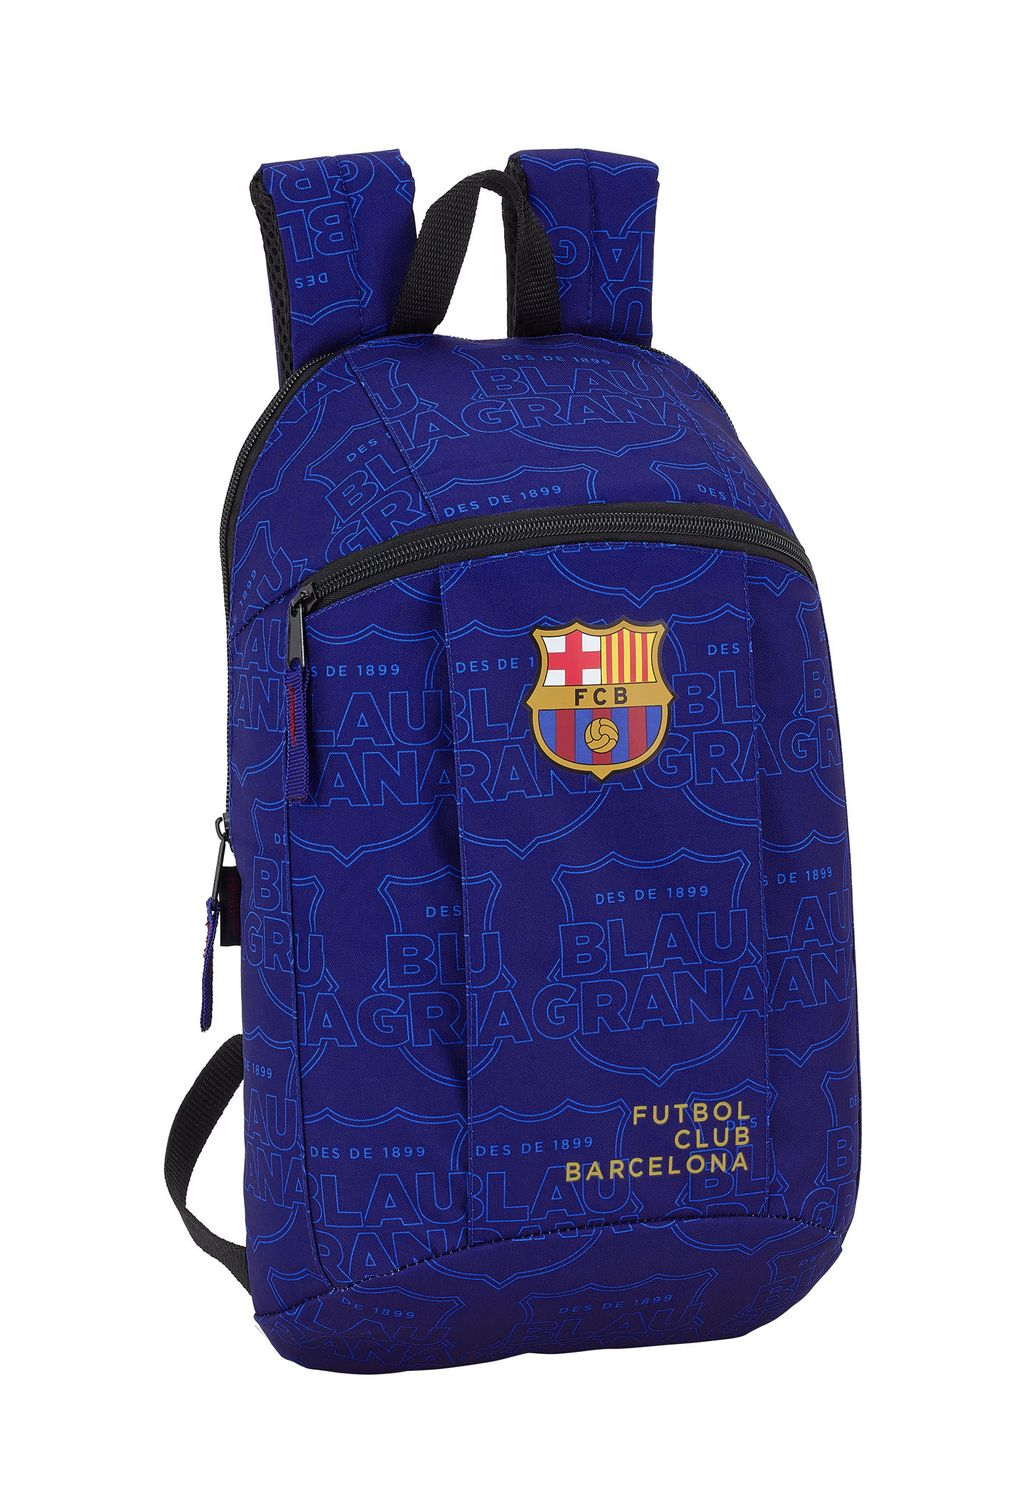 Backpack Rucksack Slim Fit F.C. Barcelona Blue 39 cm – image 1